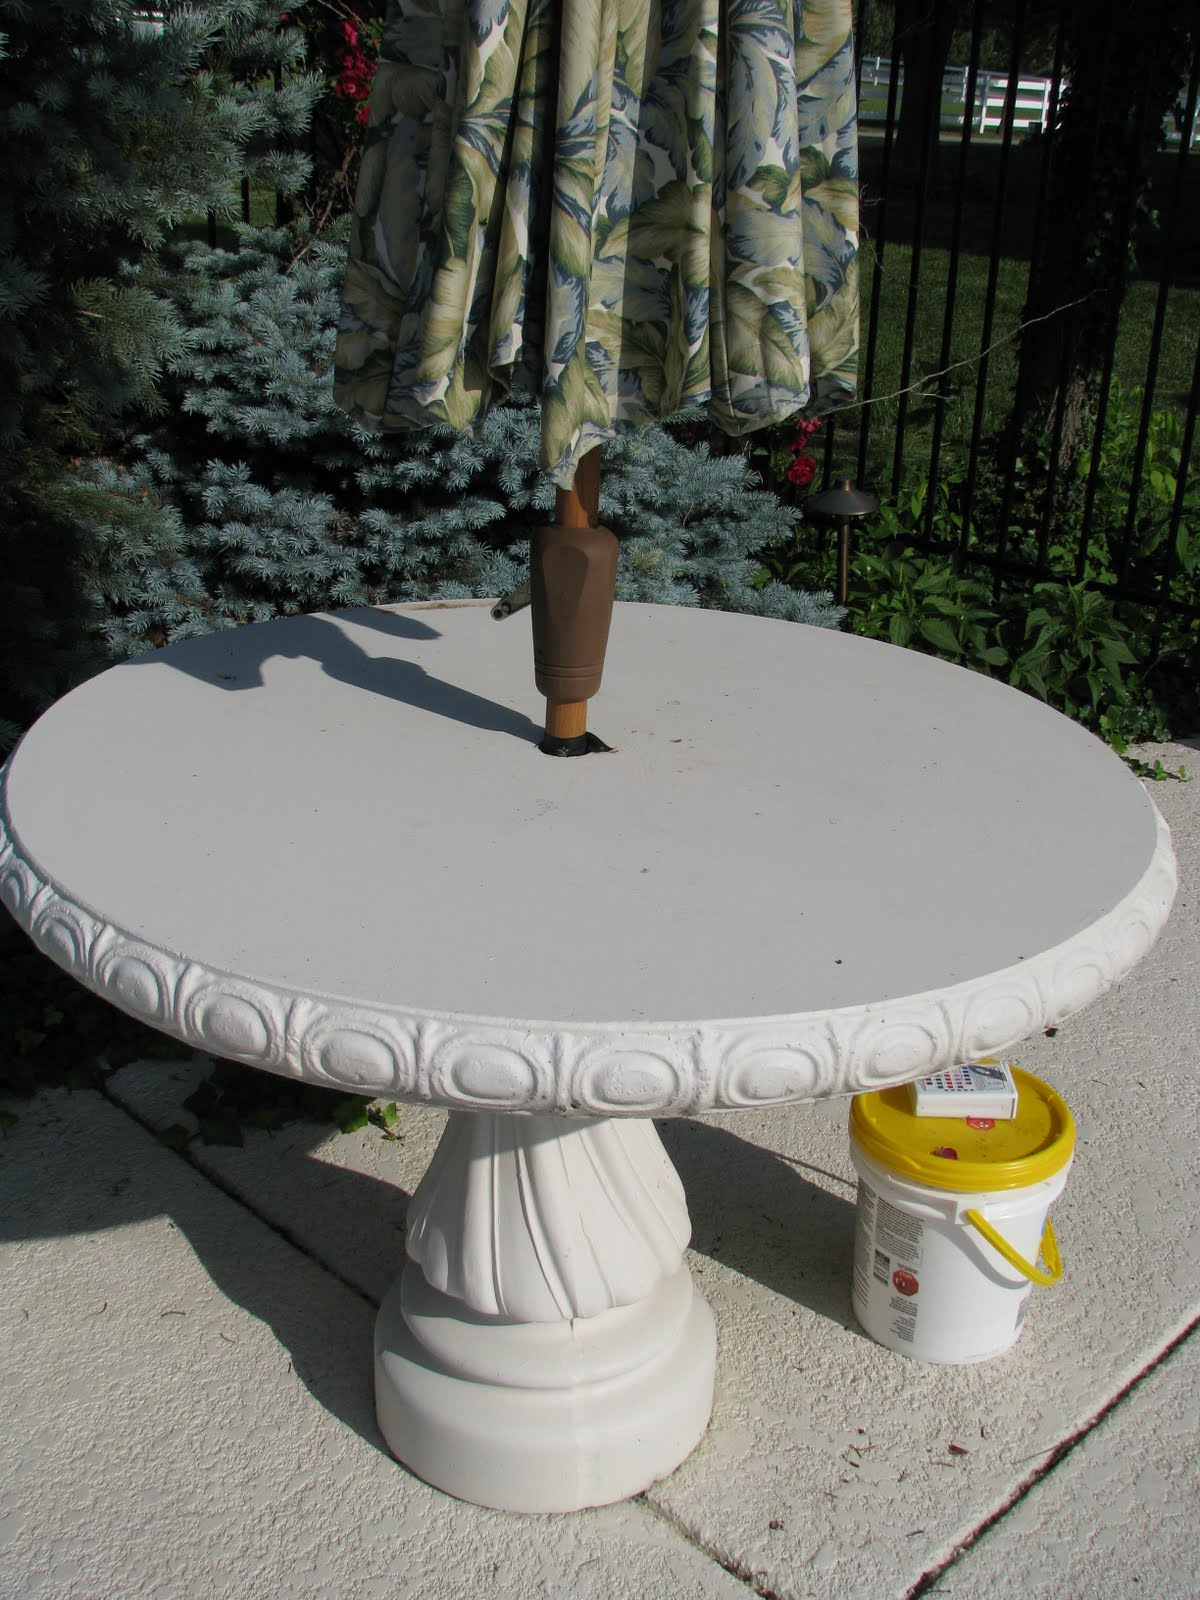 Whats With Us Staining Concrete The Magic Brush Inc Jennifer - Stained concrete table